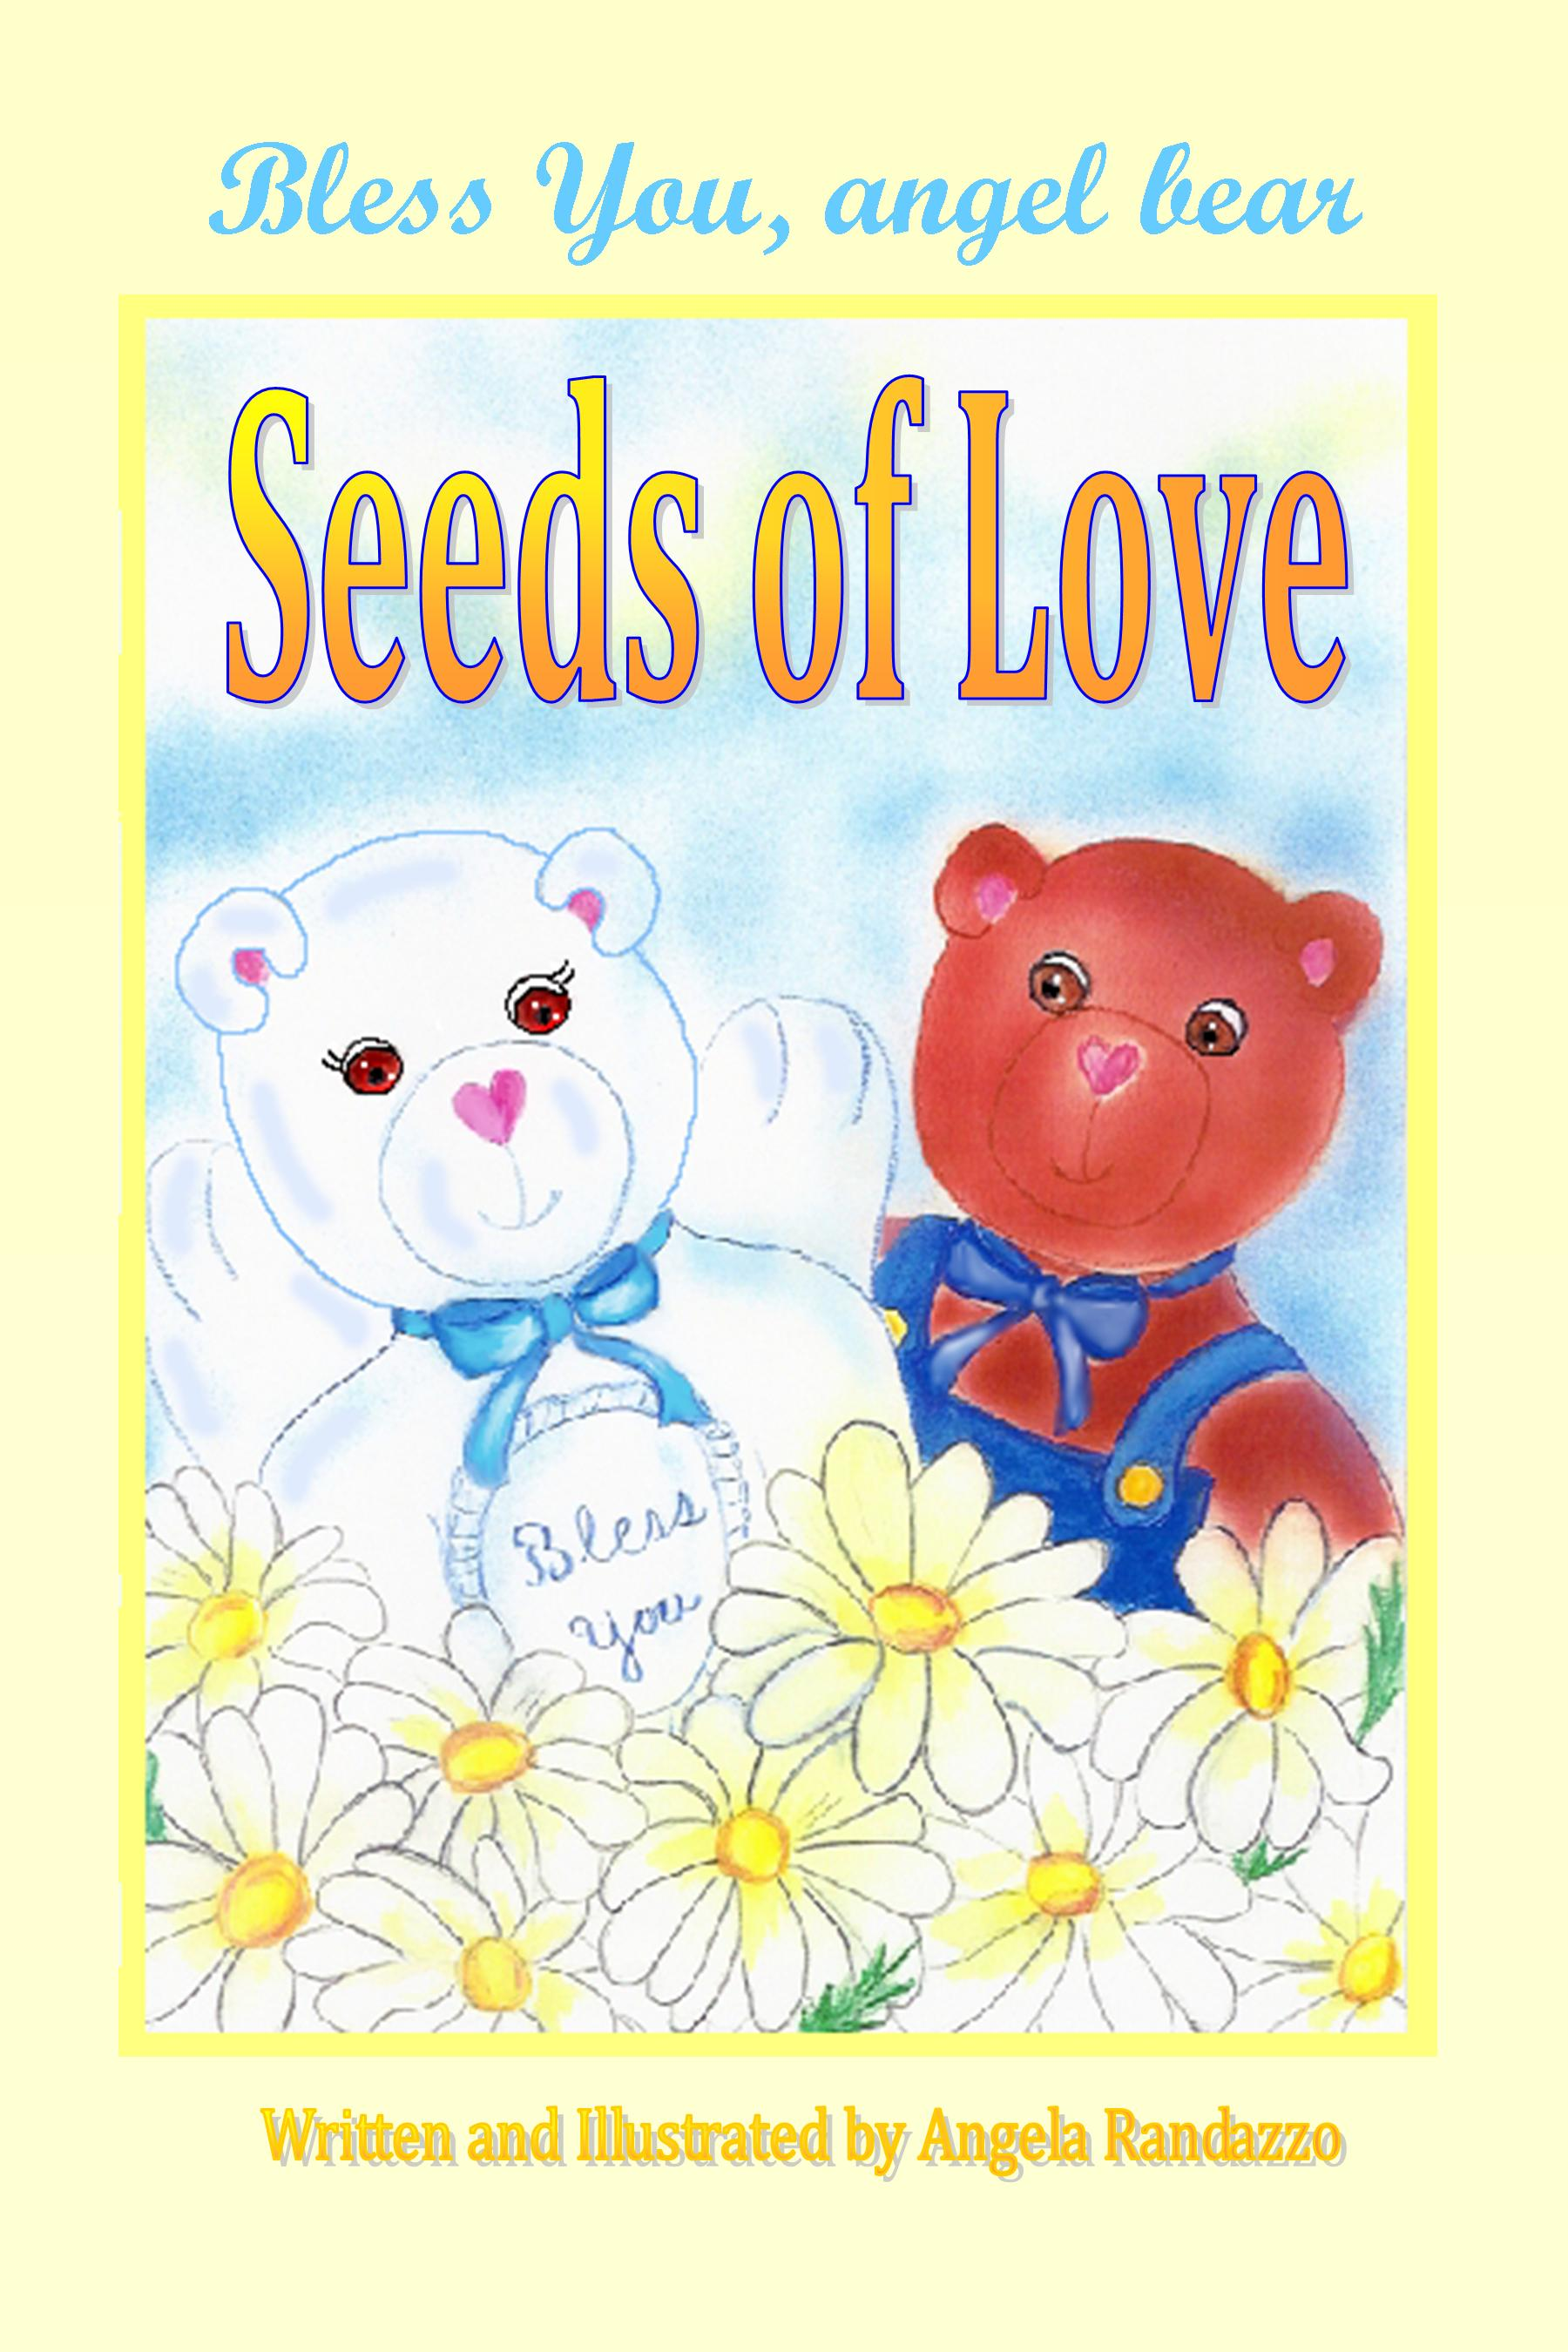 Order the book: Bless You Angel Bear ~ Seeds of Love